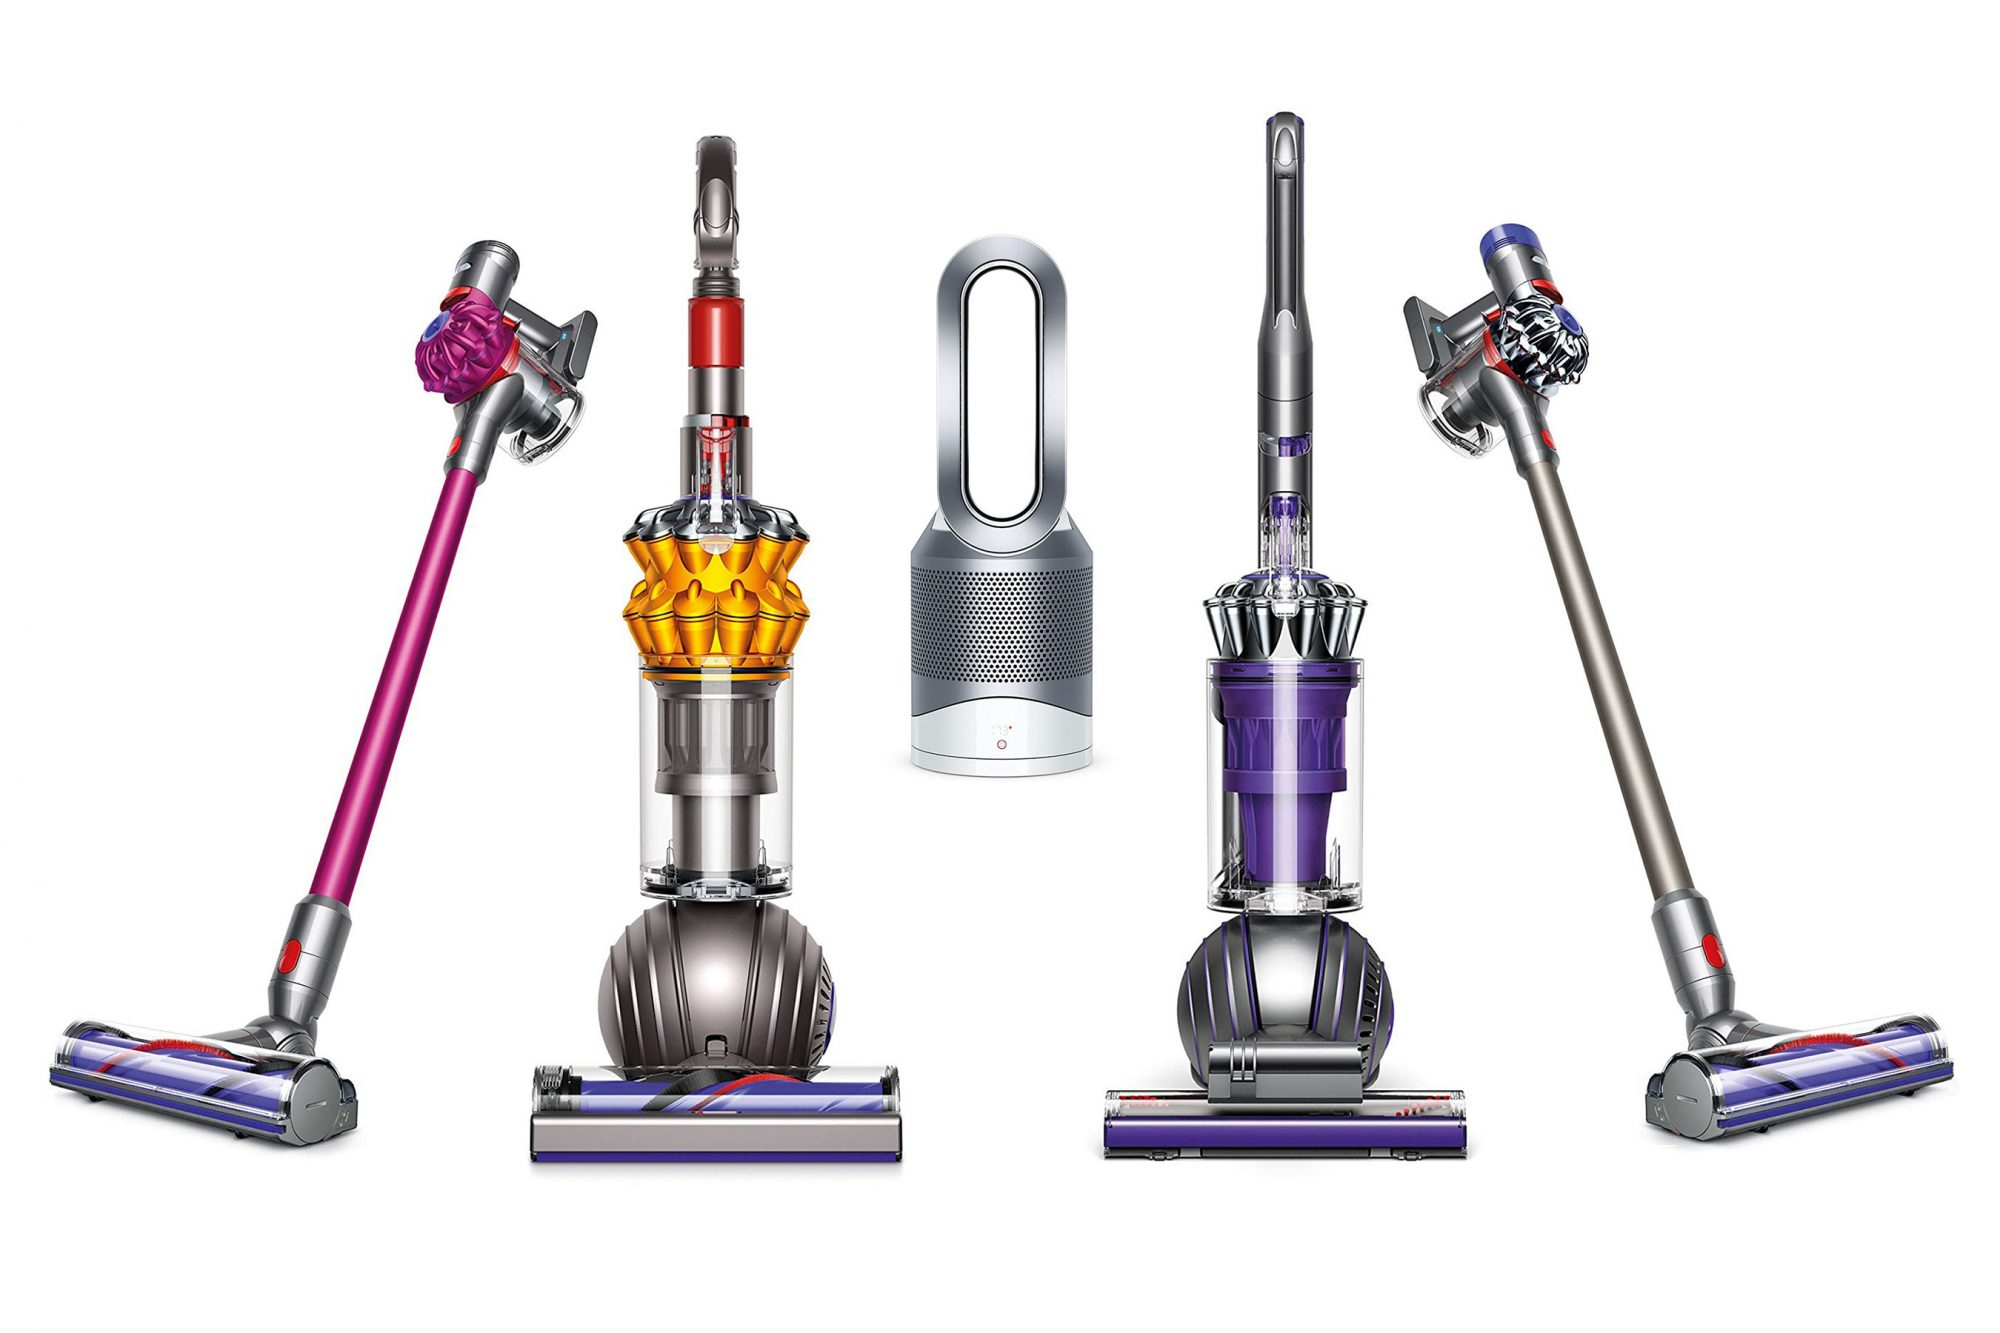 Dyson Deals Sales Amazon Vacuum Air Purifiers